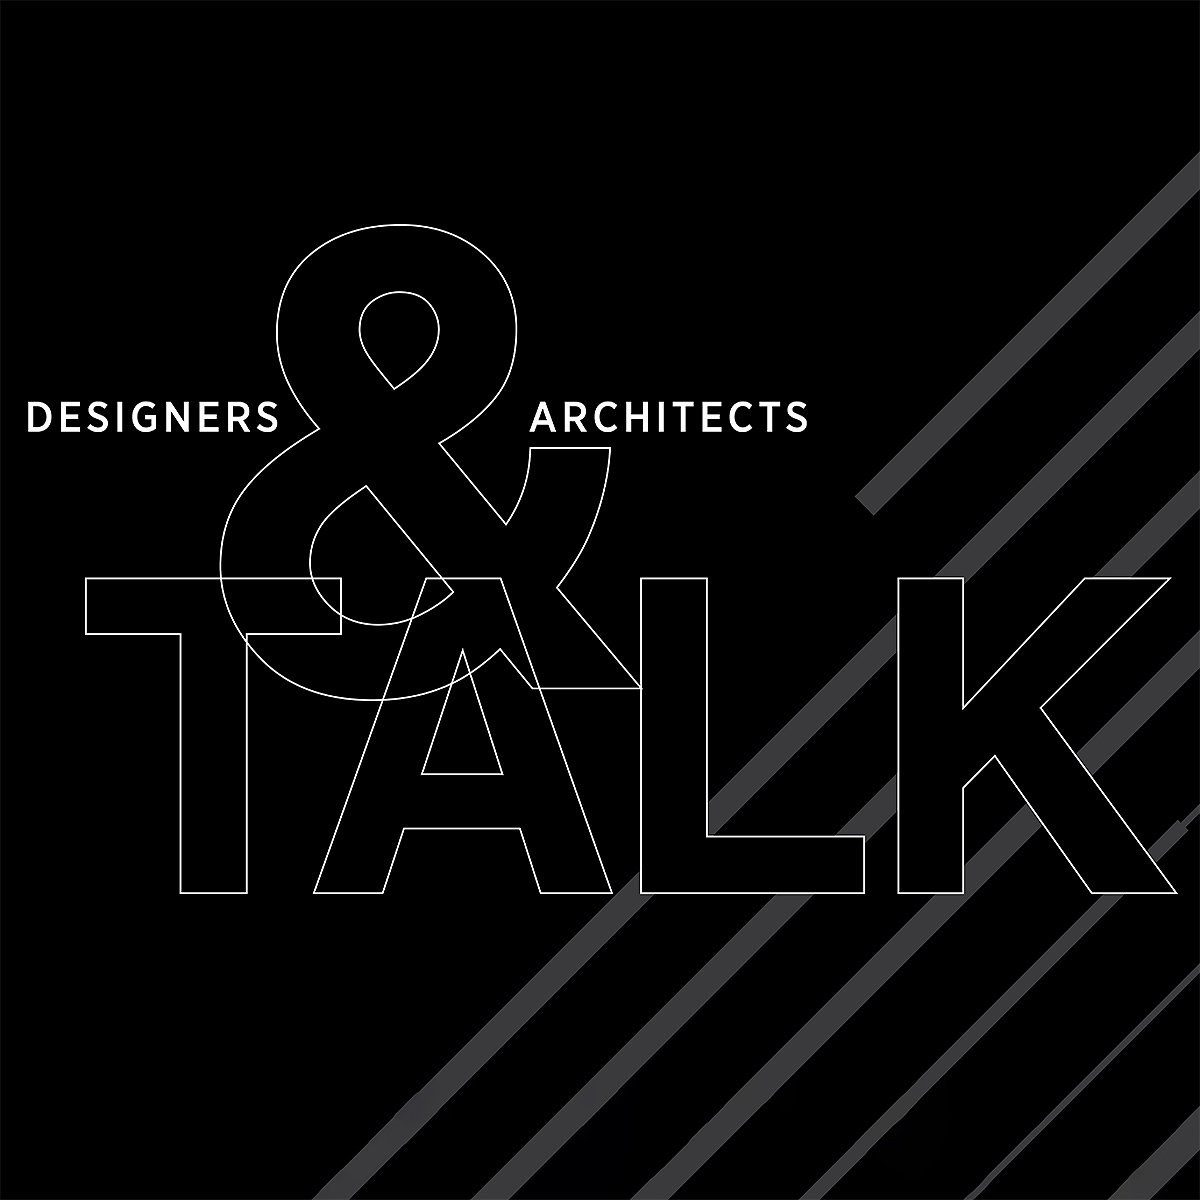 Designers and Architects Talk 2020 - A Series About Design and Its Impact on Client Success